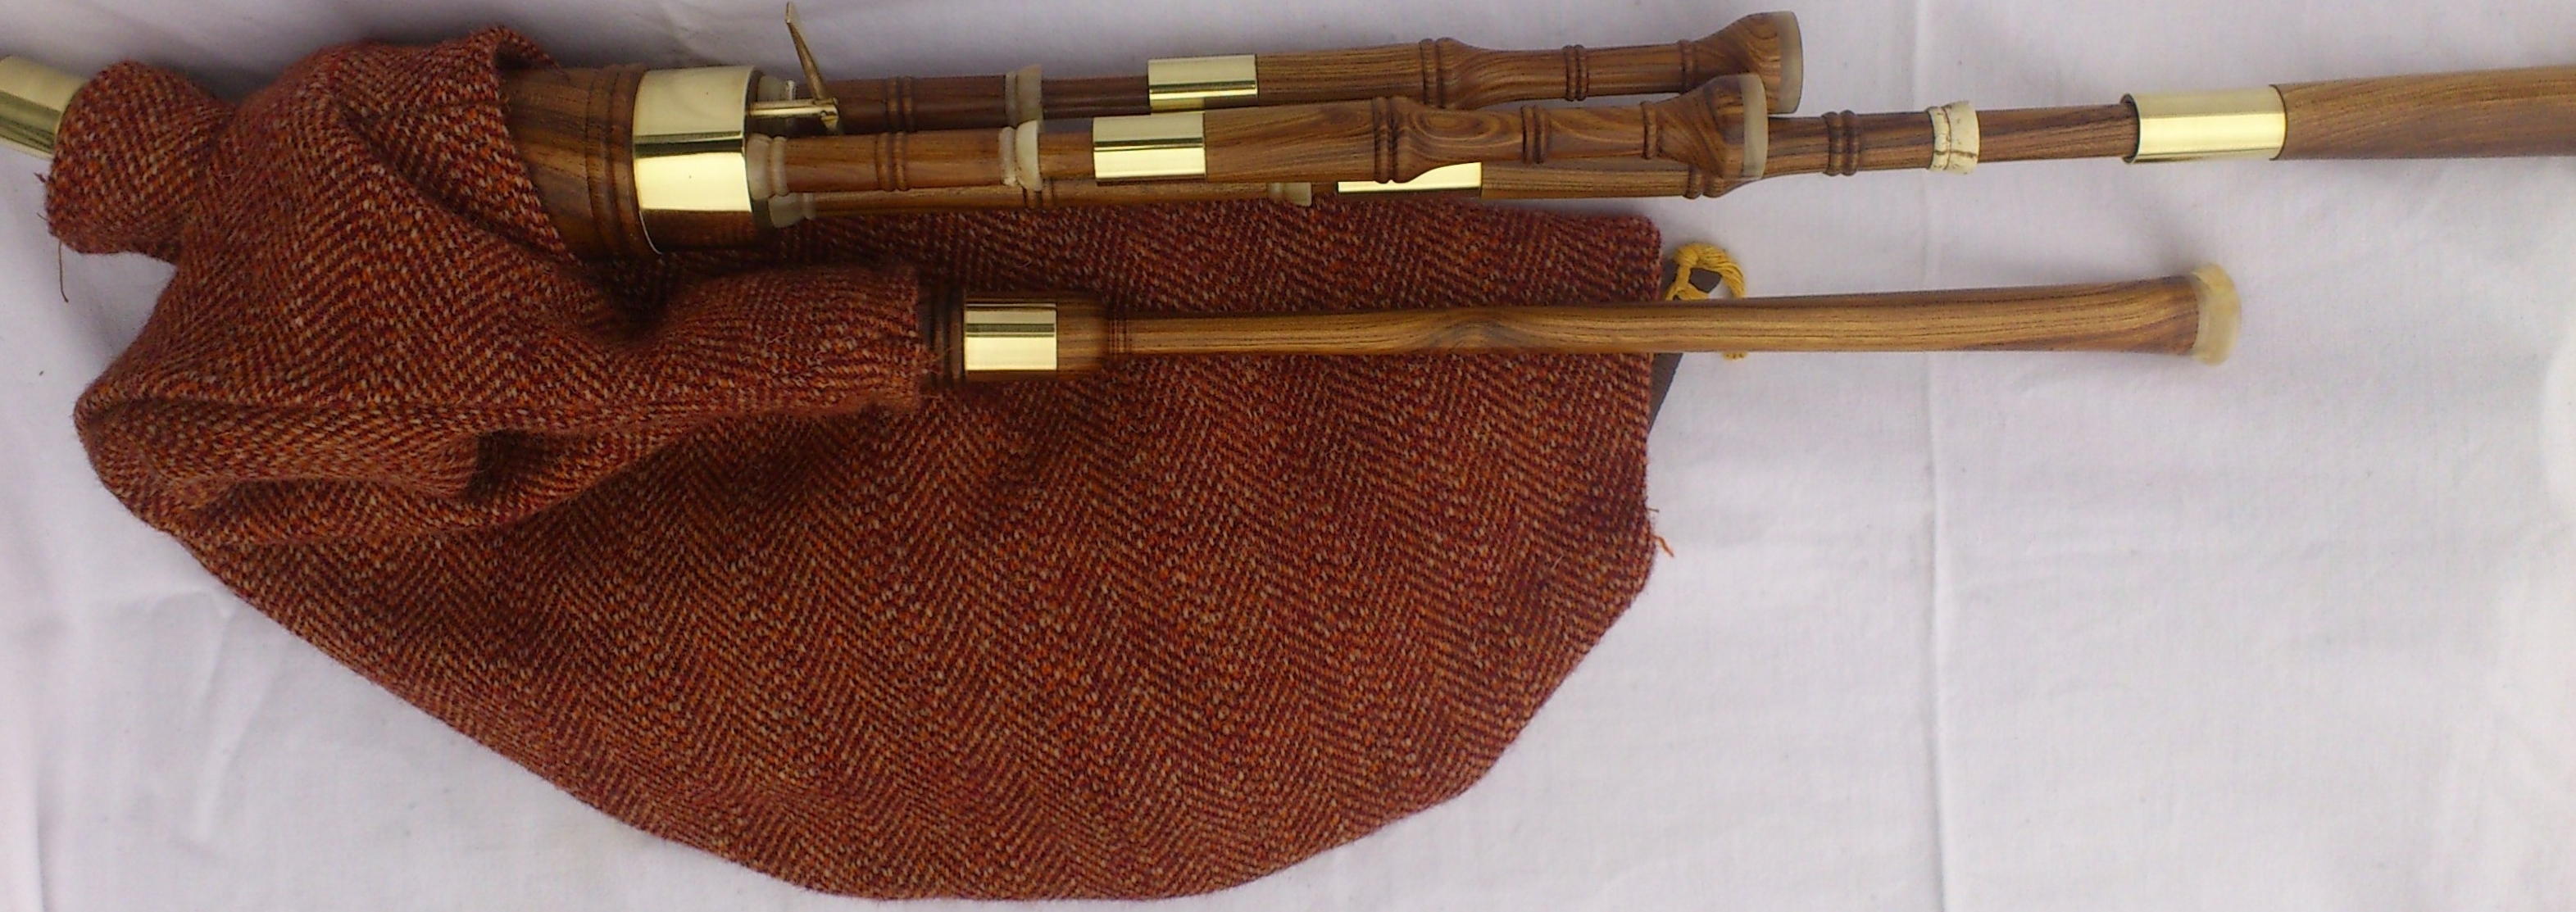 laburnum borderpipes 4